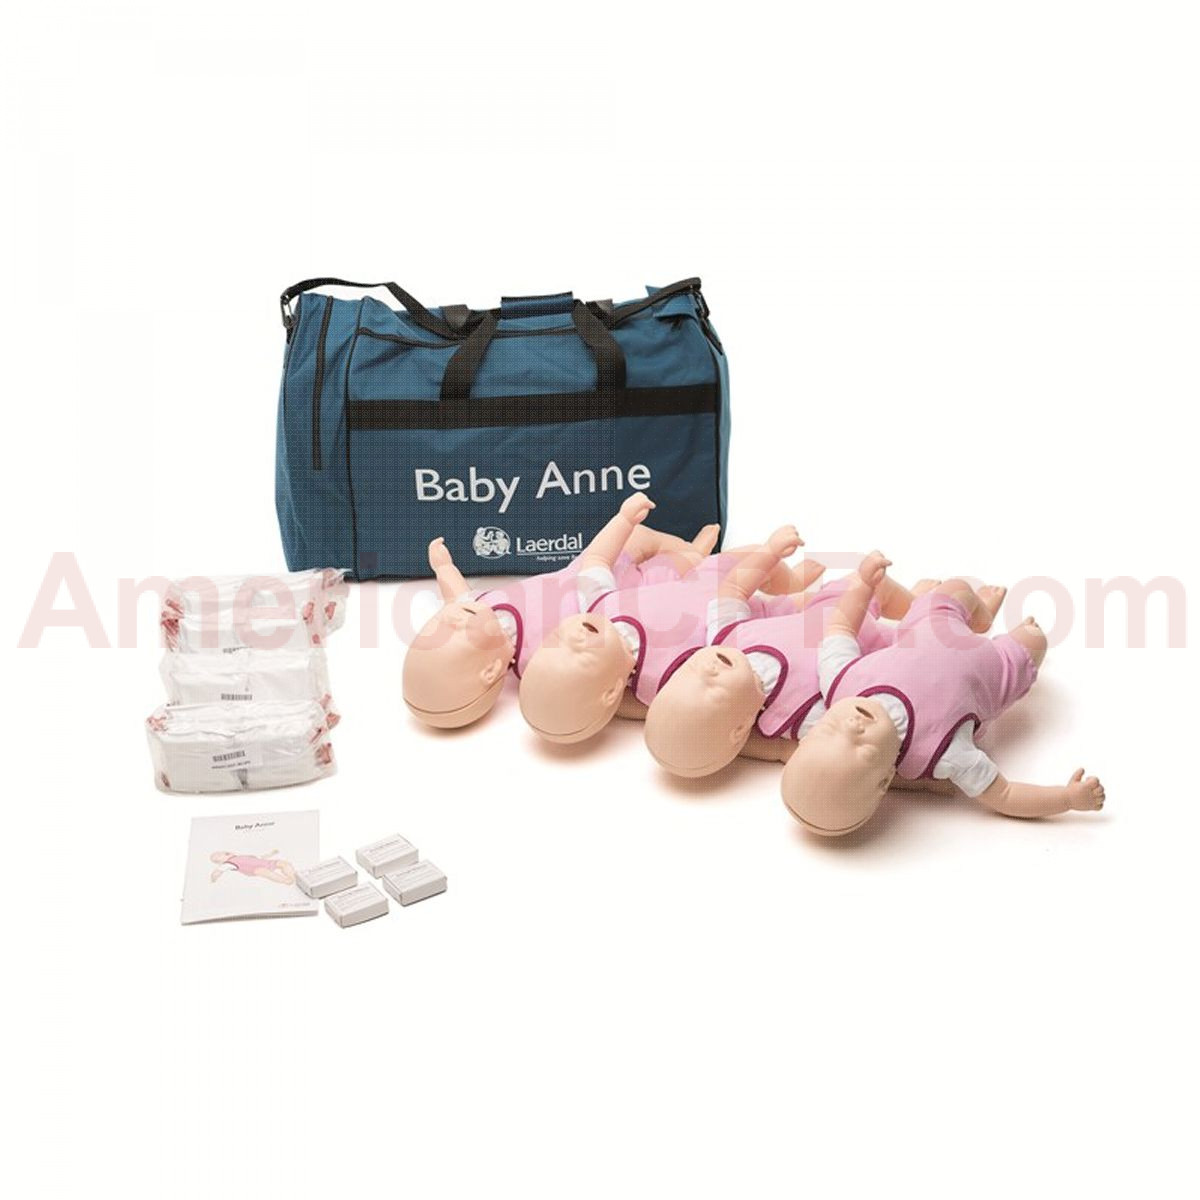 Baby Anne - Infant CPR Manikin - 4 Pack - Laerdal